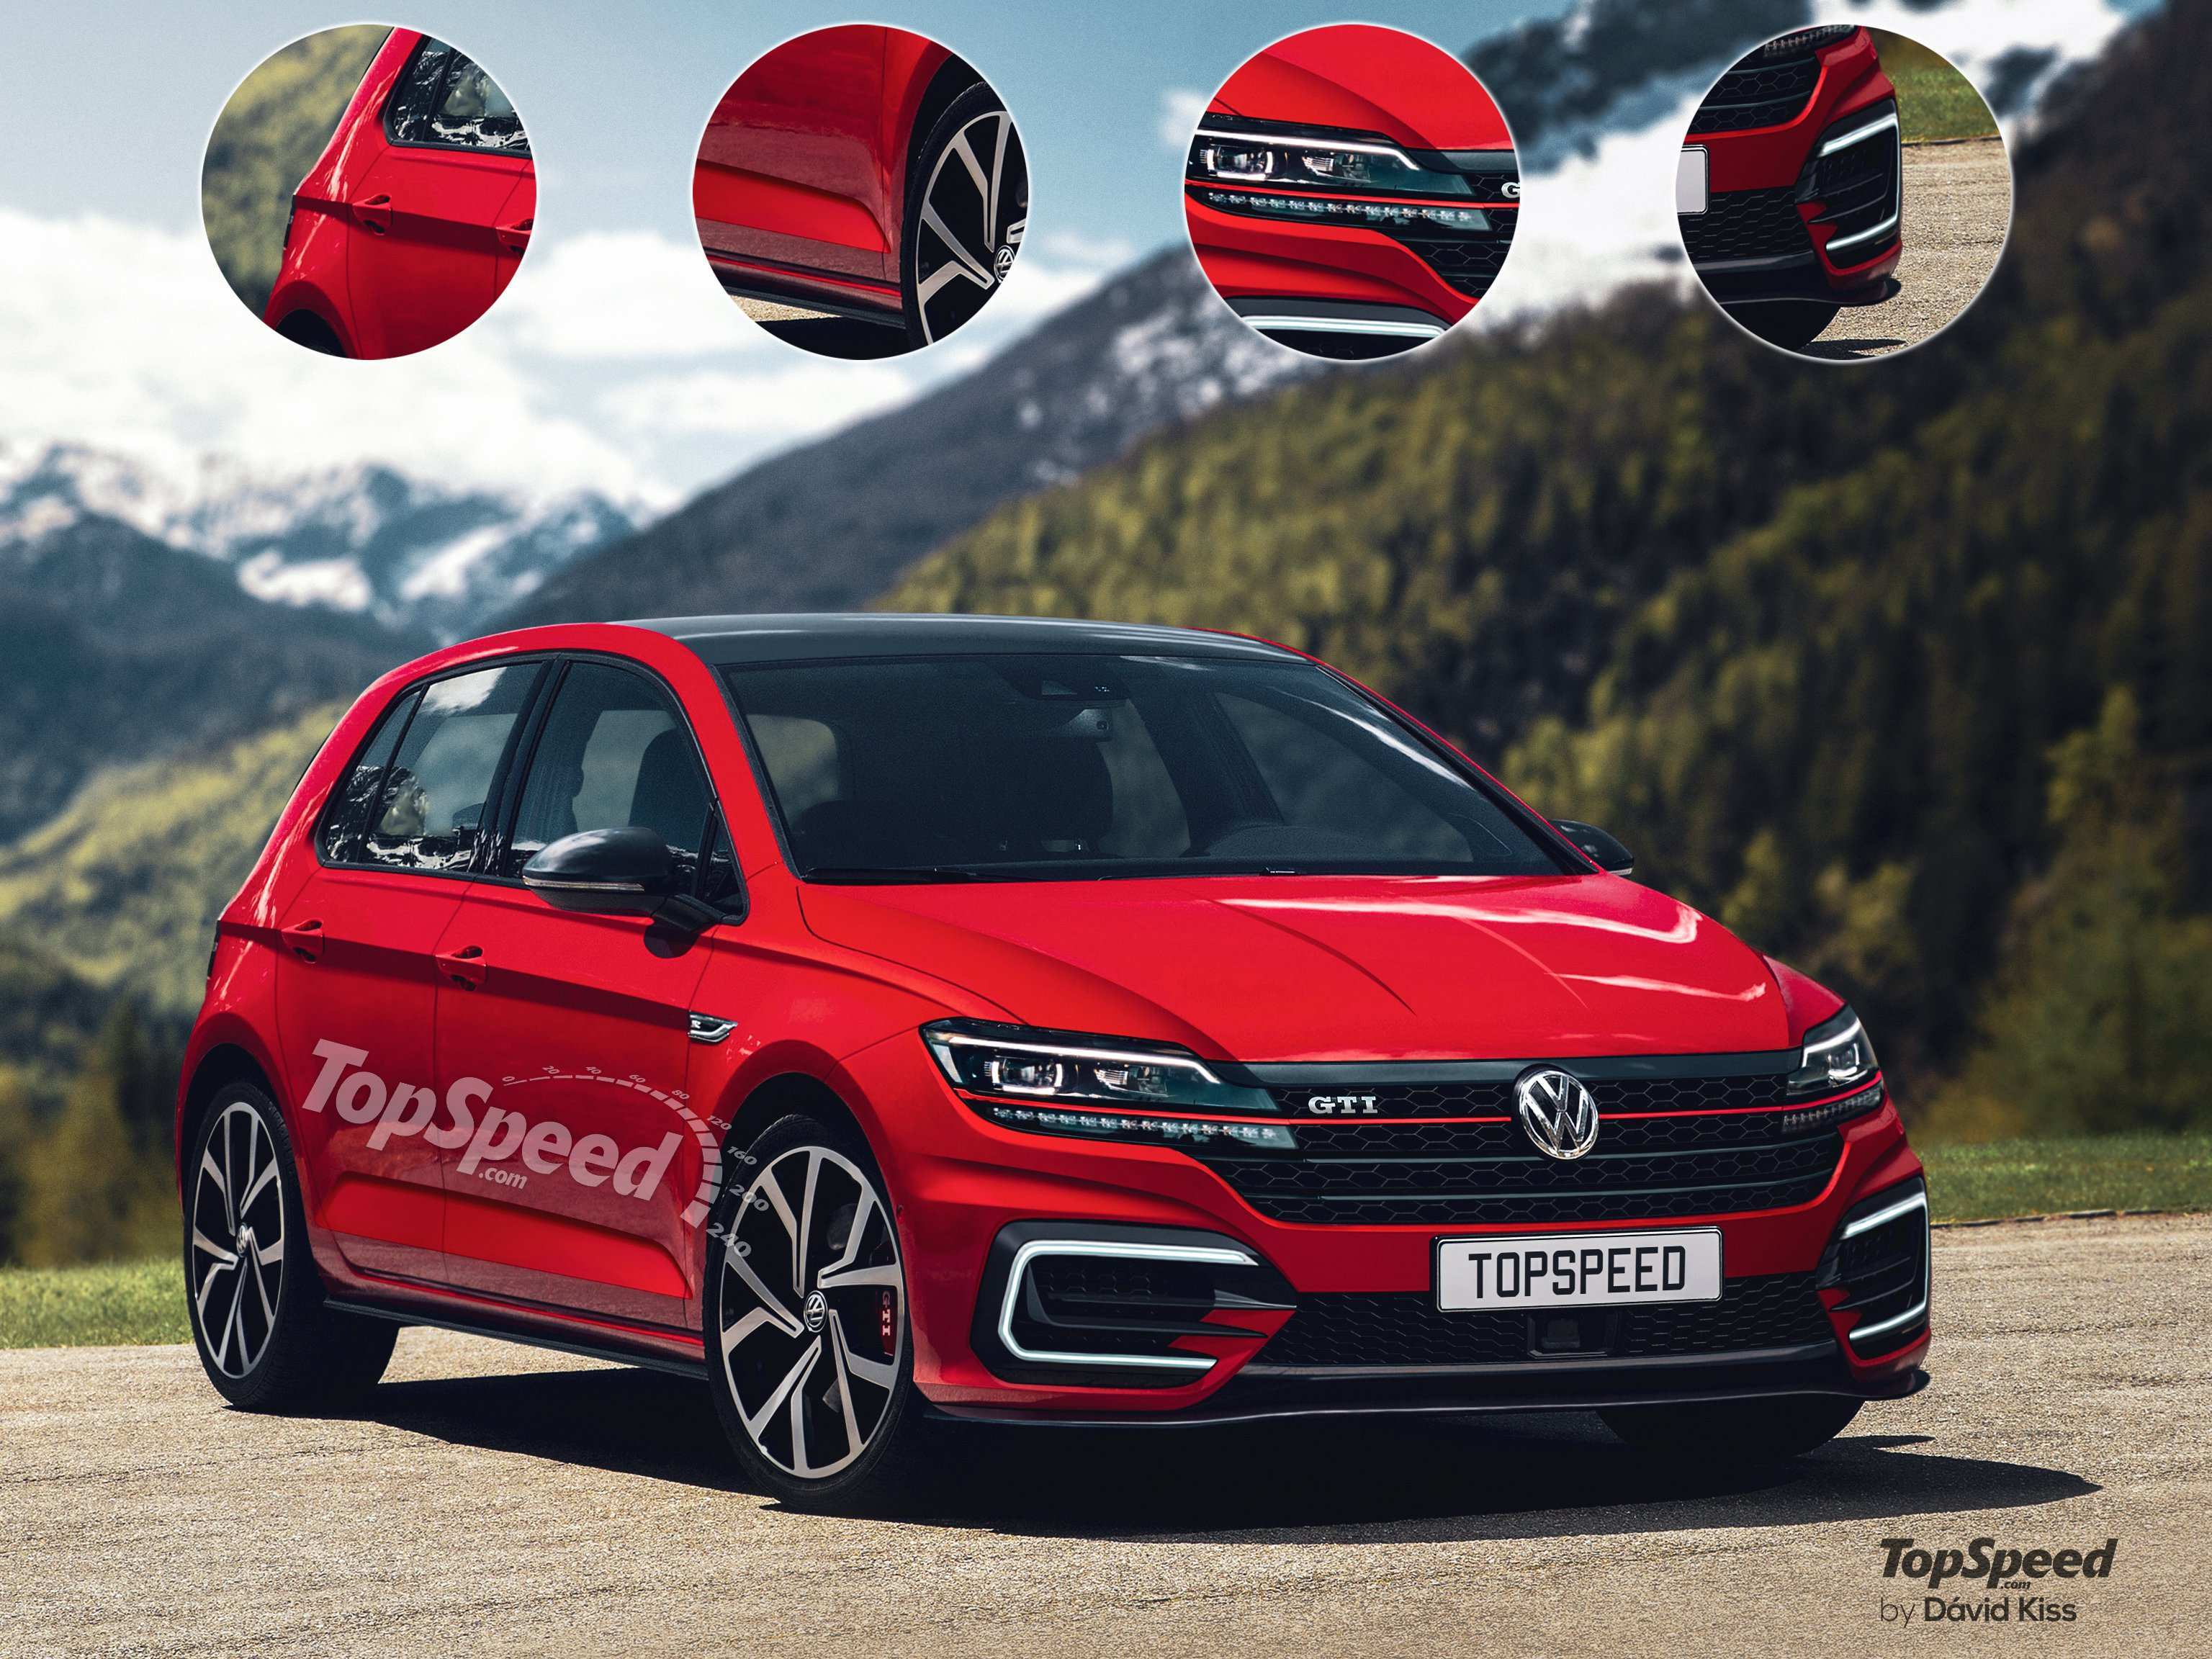 70 Concept of Volkswagen Upcoming Cars 2020 Specs for Volkswagen Upcoming Cars 2020